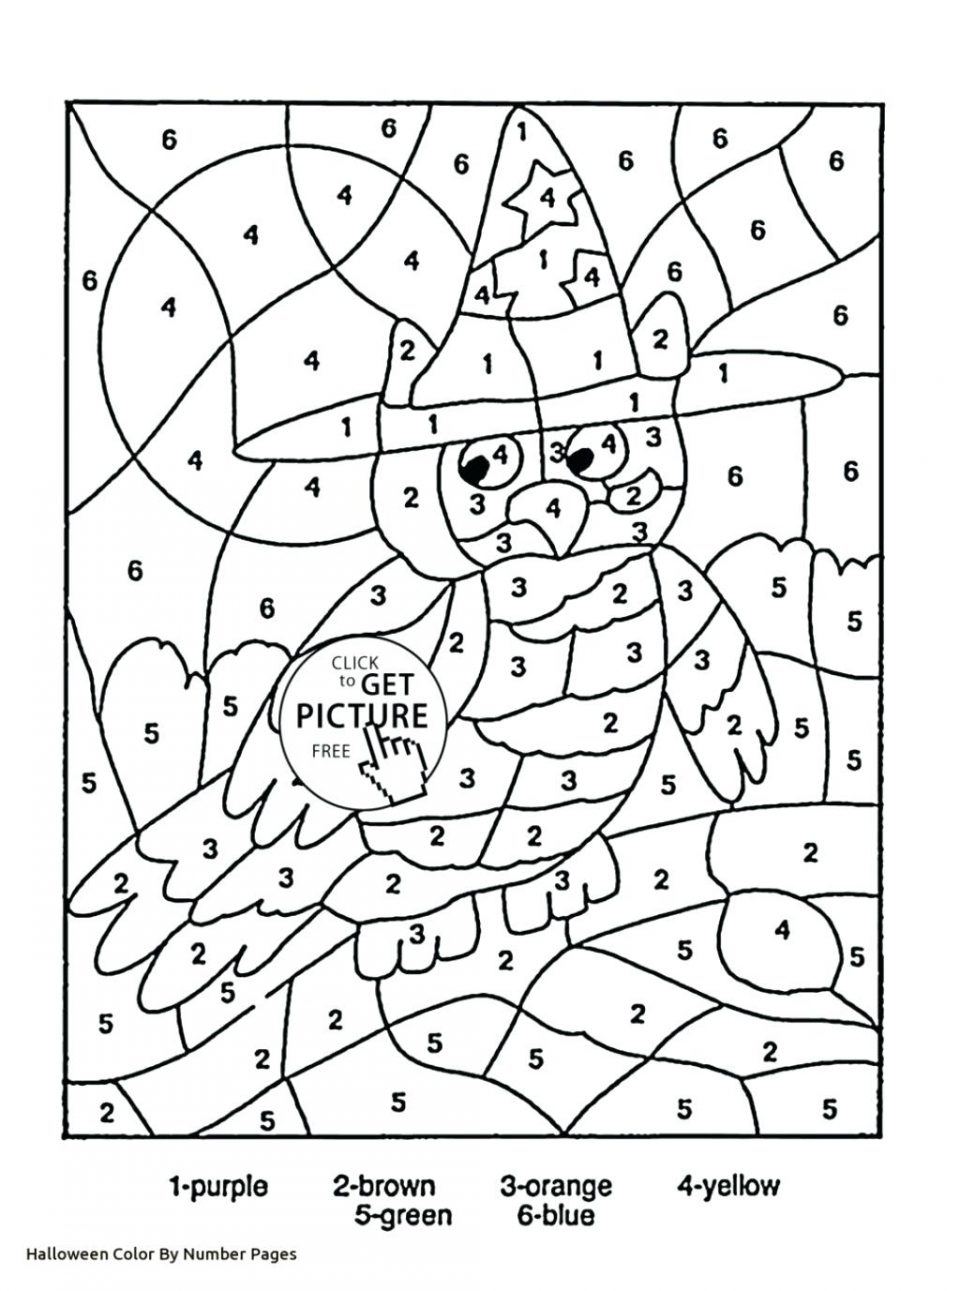 Mathheet B310423E49A61Dcd1093A38C03F9A050_Coloring Pages